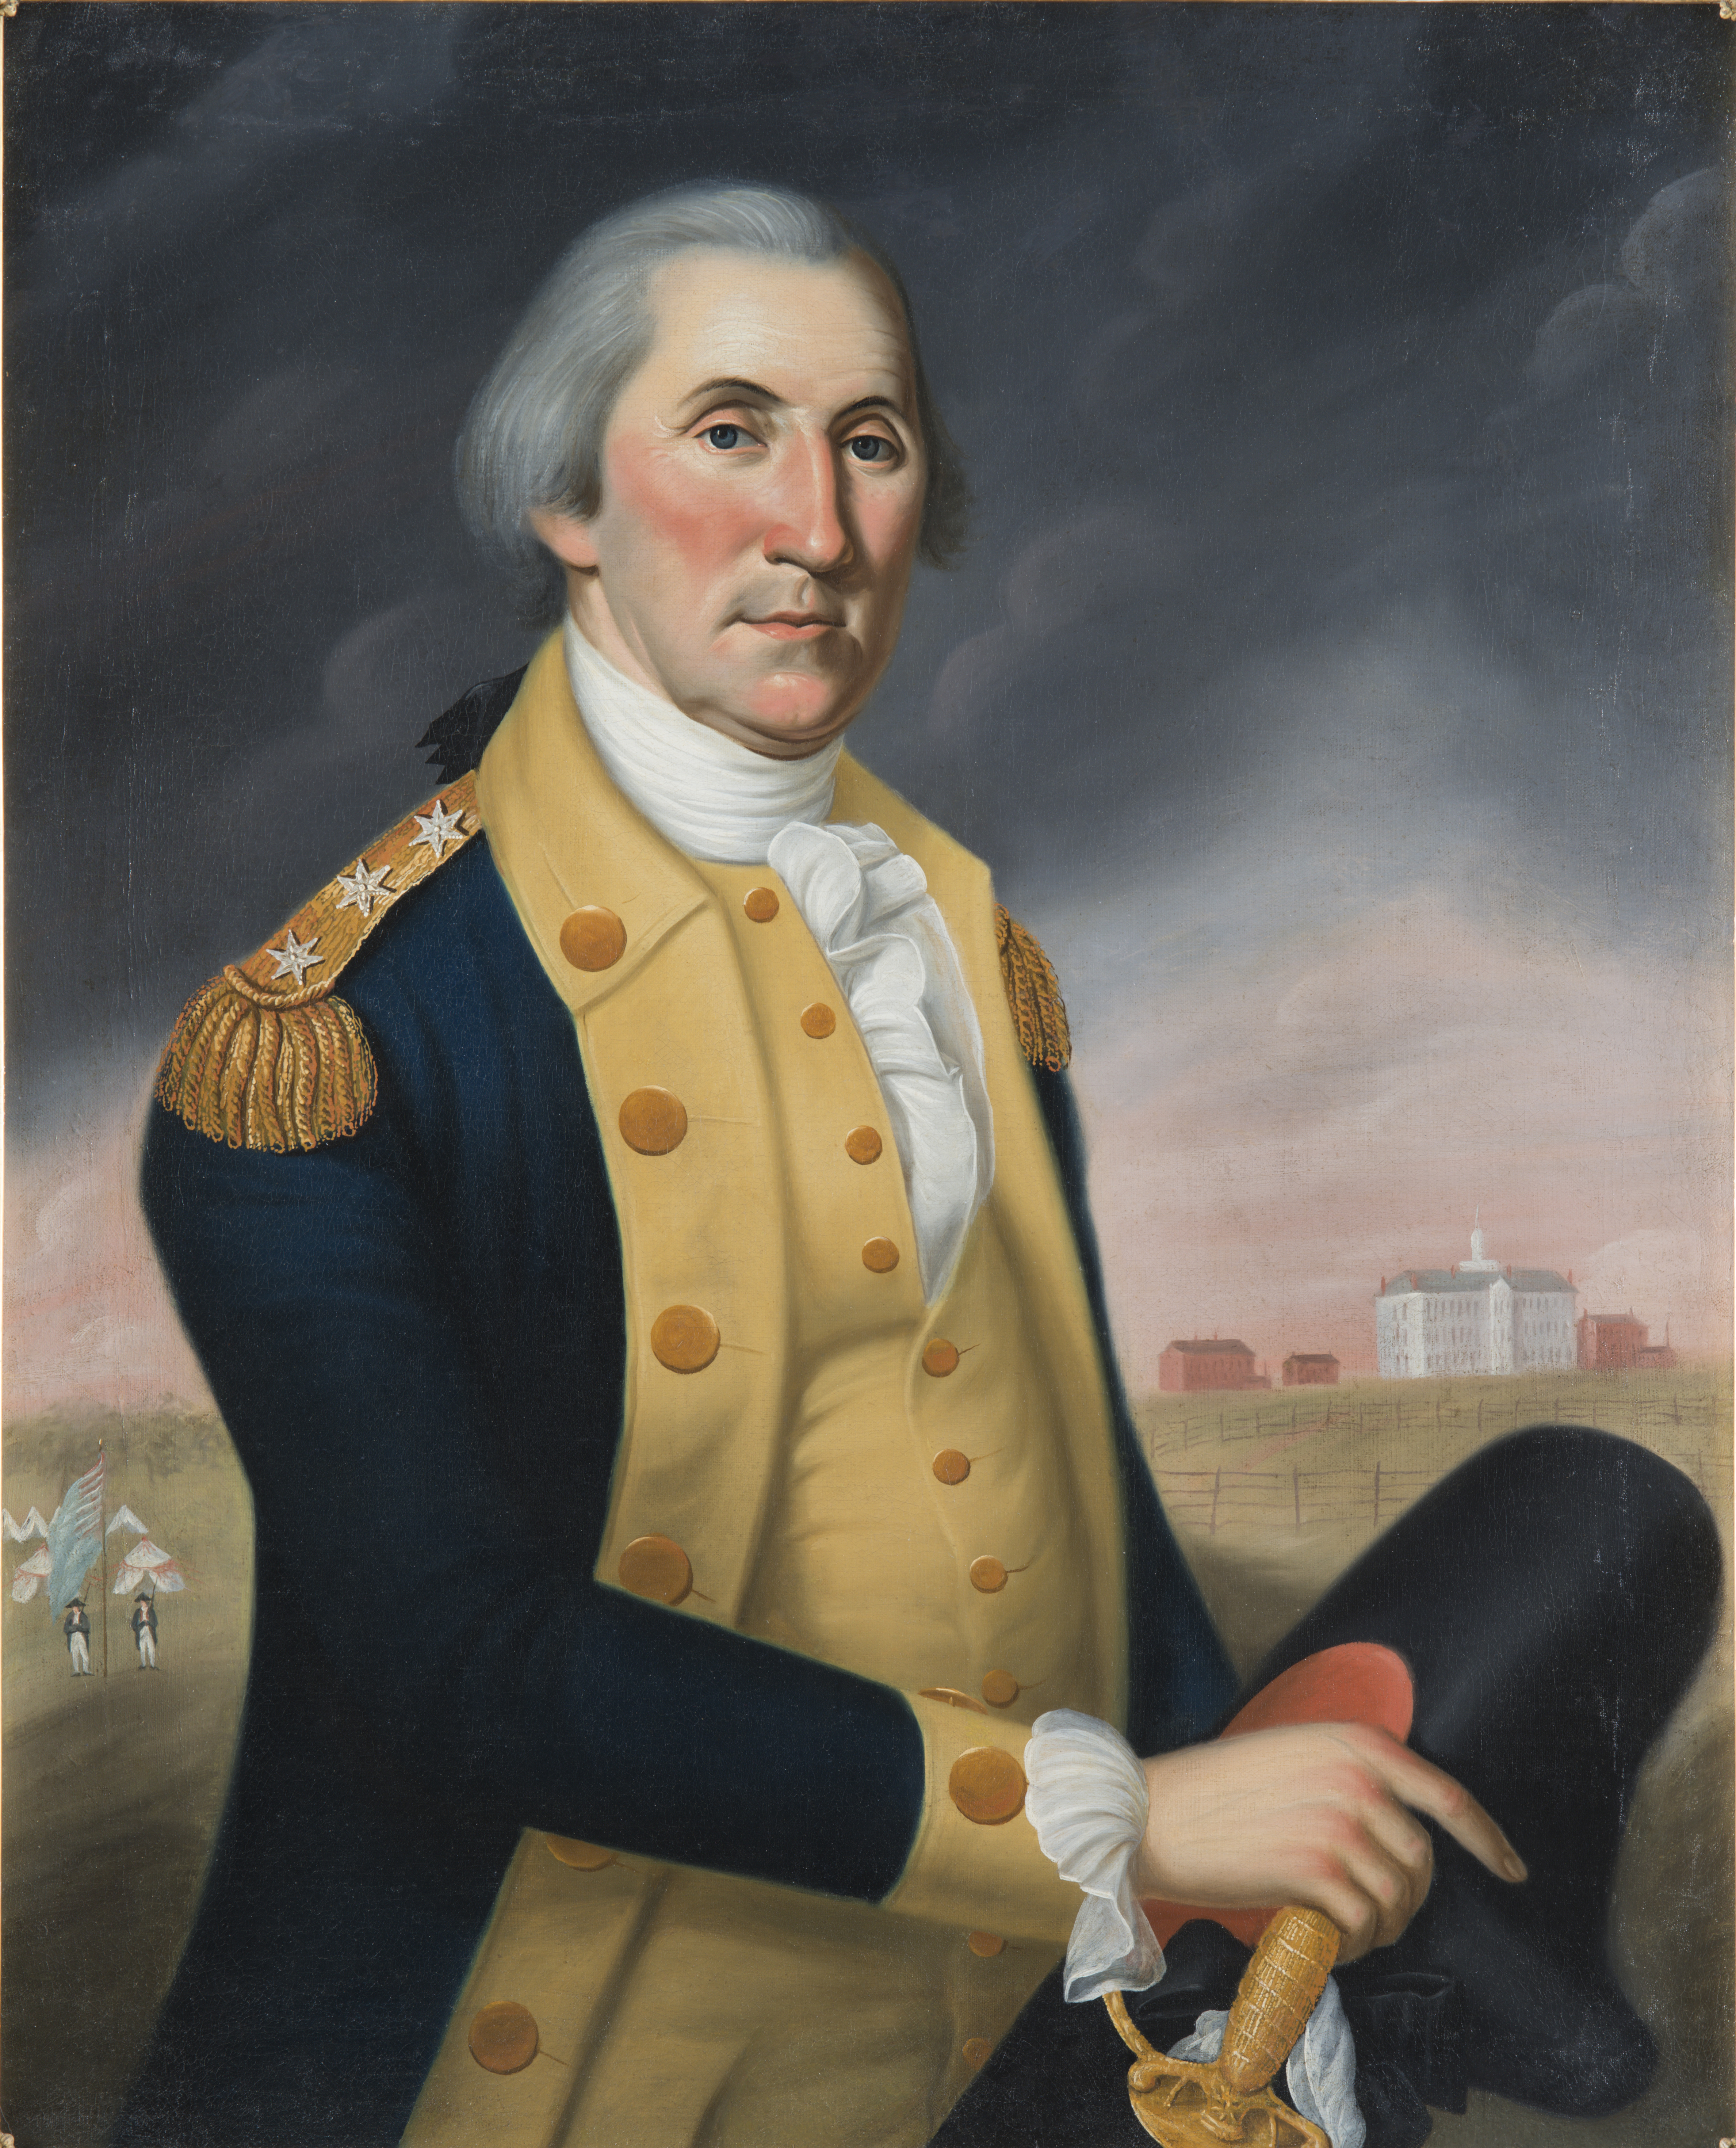 Photo: Photo caption: Charles Peale Polk, nephew of the famous American painter Charles Willson Peale, painted this portrait of George Washington circa 1790. The painting depicts Washington in front of Nassau Hall in Princeton, New Jersey, a reference to his important victory there in 1777. Fort Ticonderoga Museum Collection.